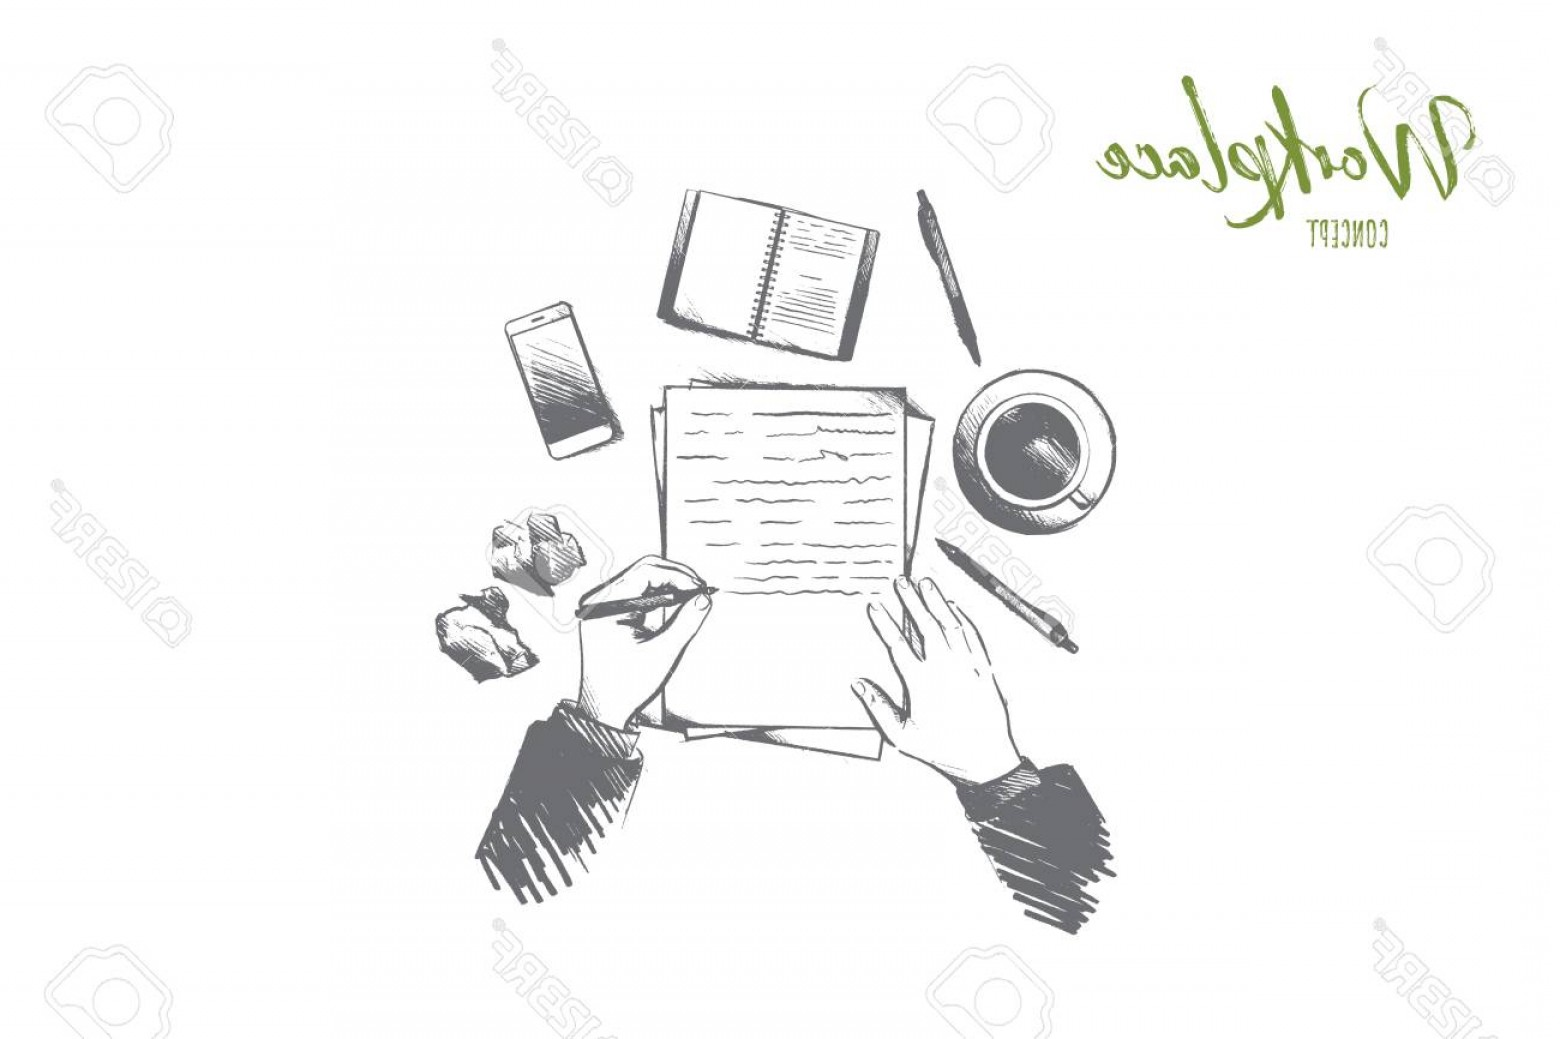 Notepad Writing Hand Vector: Photostock Vector Workplace Concept Hand Drawn Top View Of Person Writing In Notepad Placed On Table Desktop With A Co